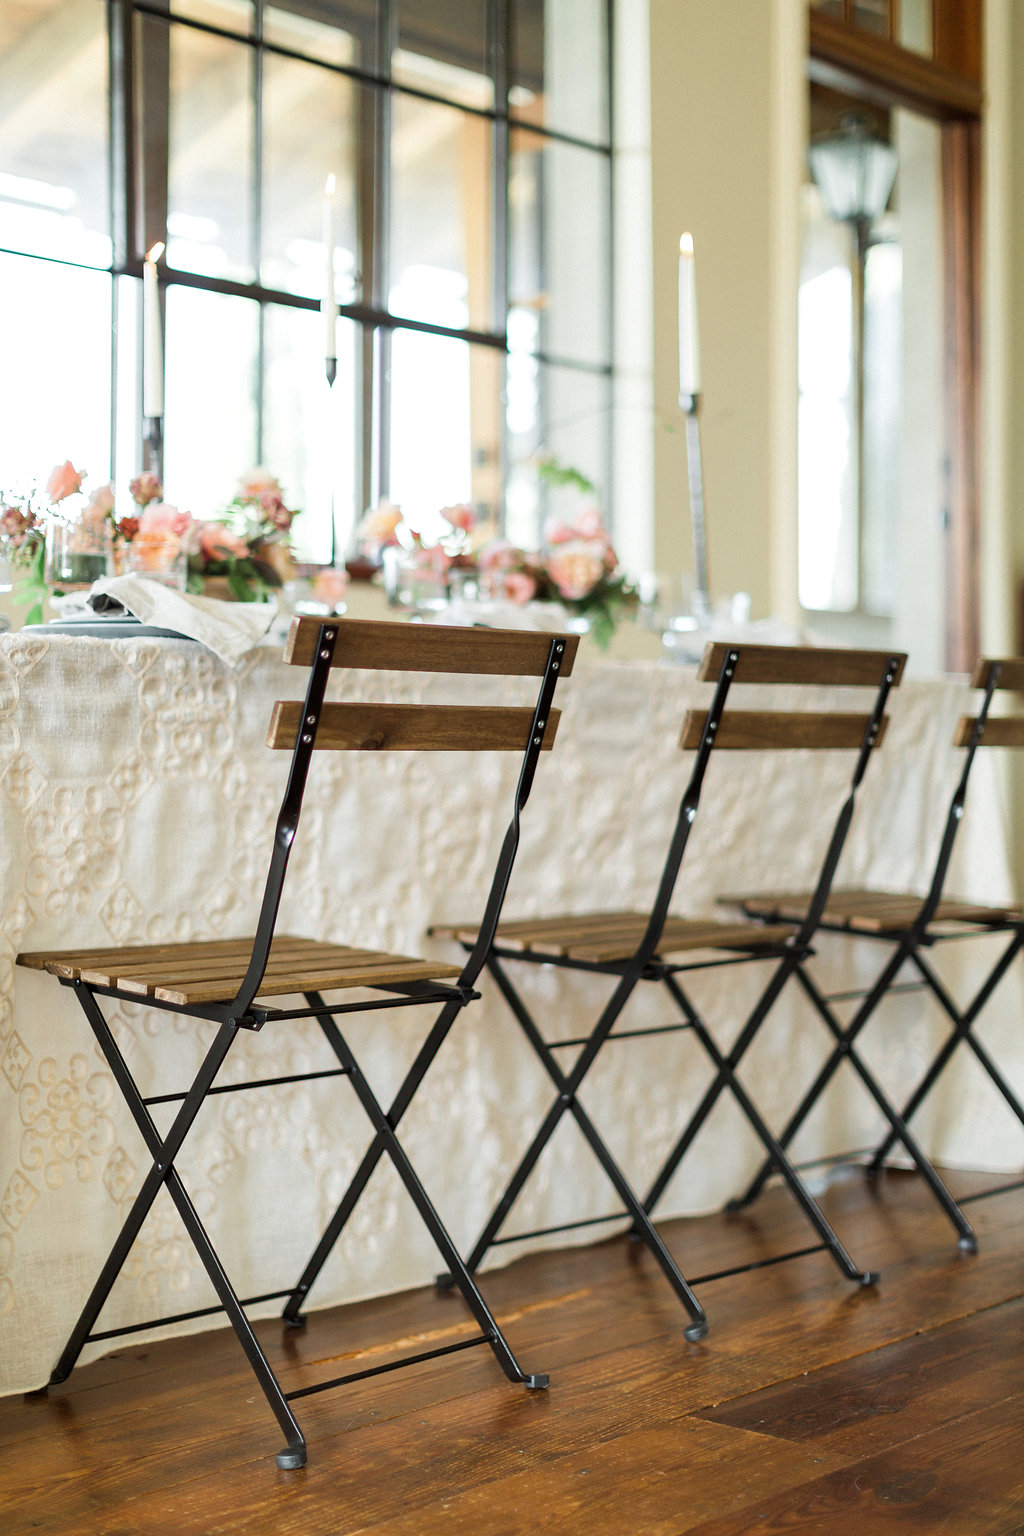 rustic organic wedding chairs - https://ruffledblog.com/cloudy-day-wedding-inspiration-with-a-hand-painted-bridal-gown